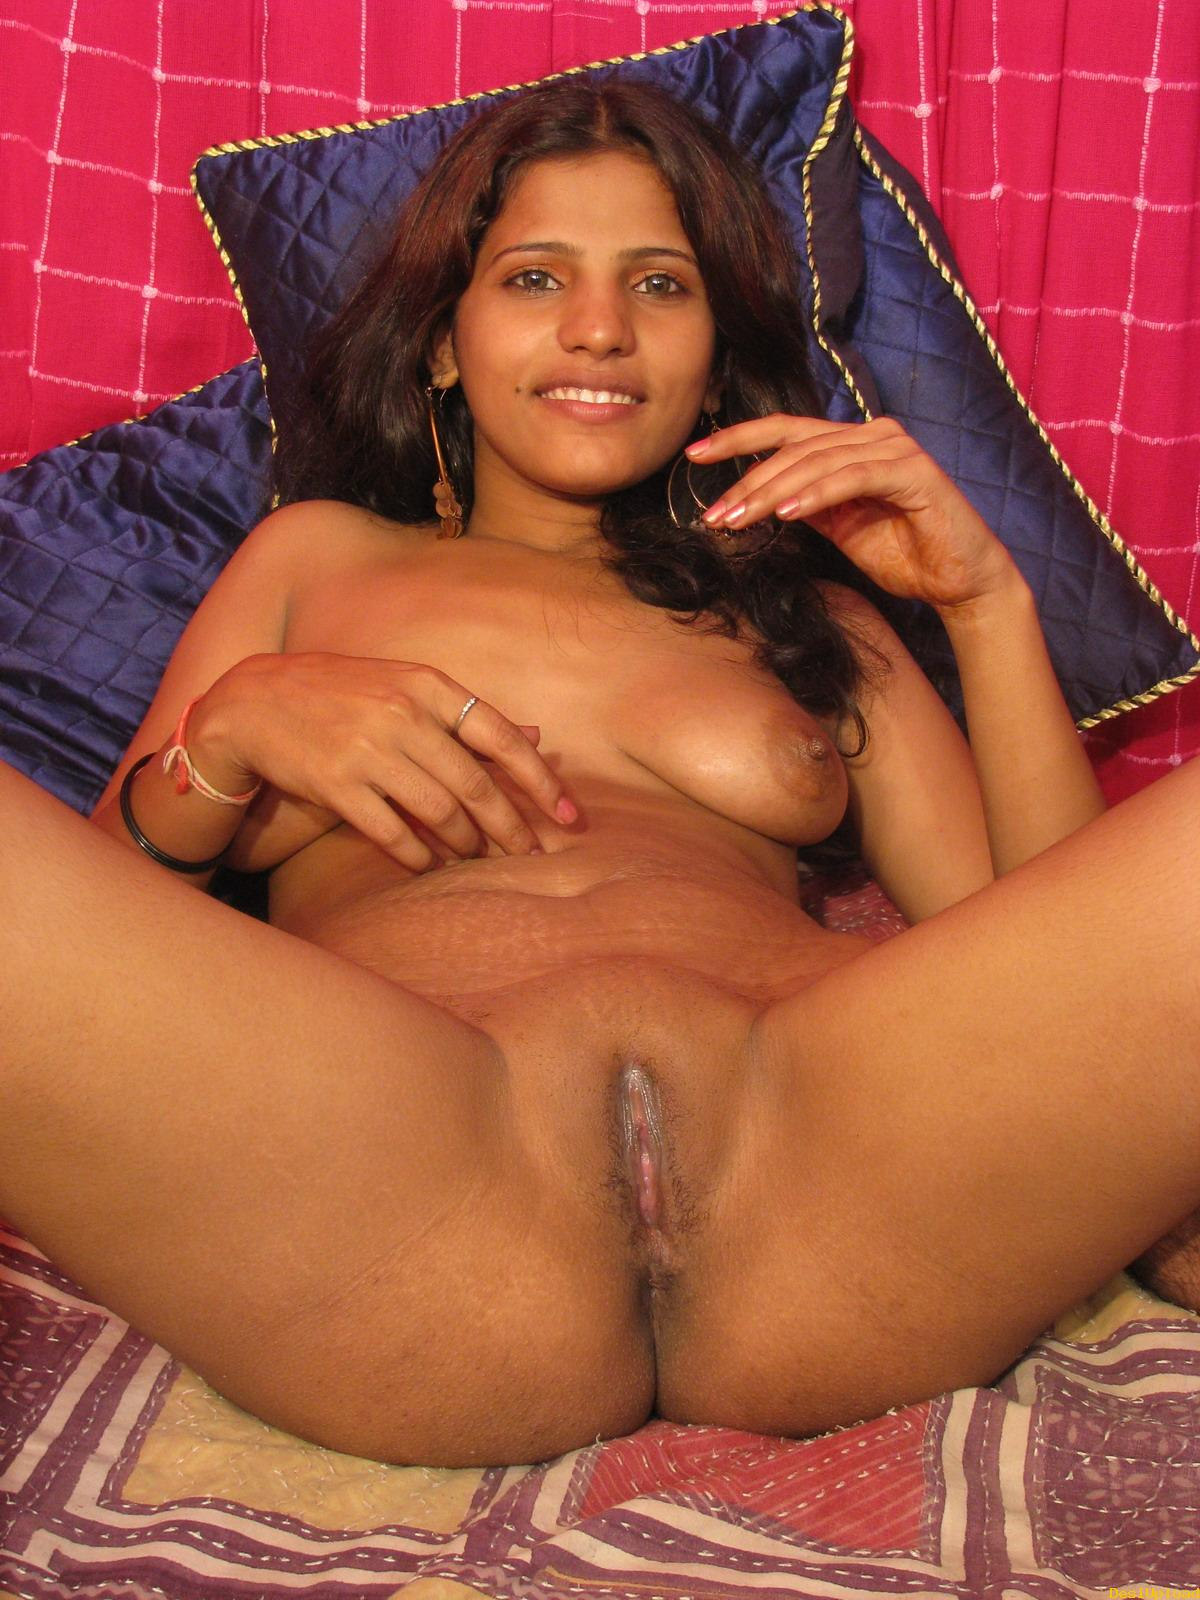 Shy south indian women show her nude body to his